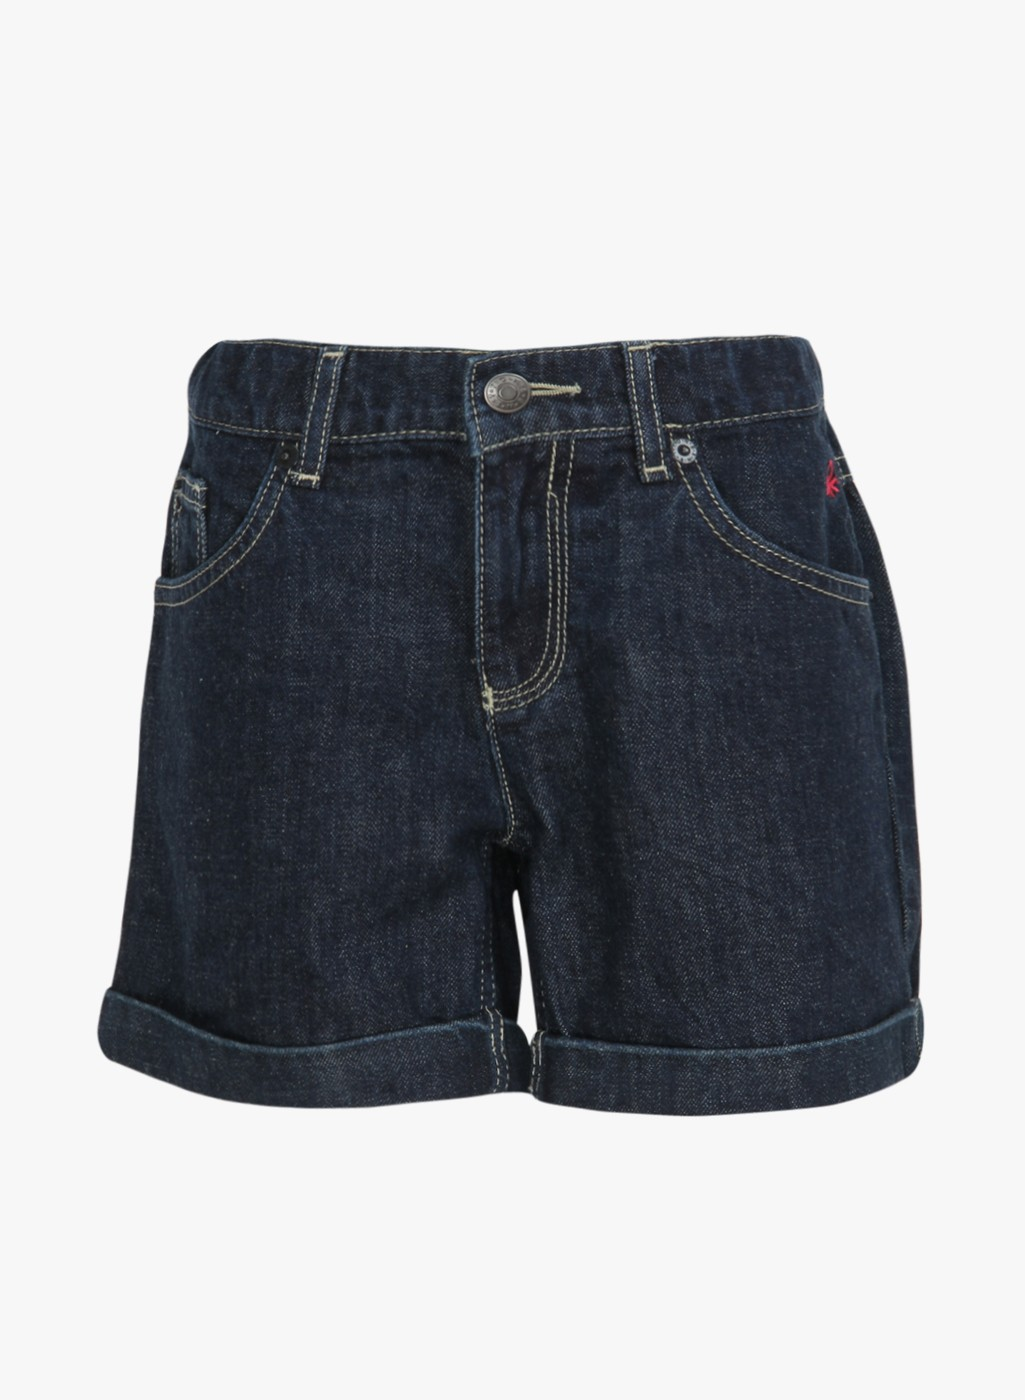 Stylish Regular Fit Dark Blue Cotton Short